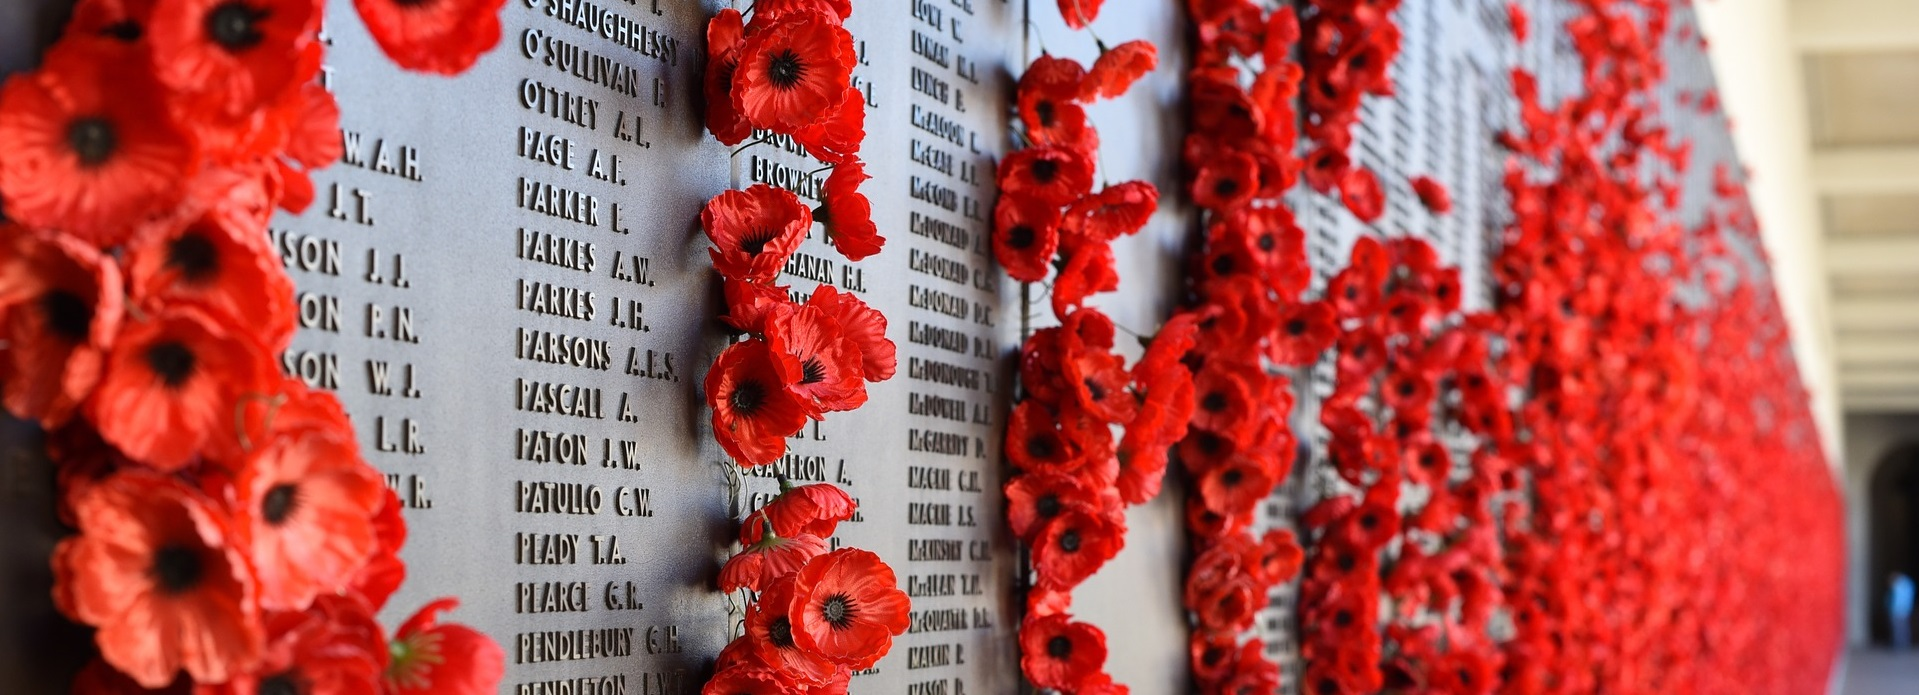 All you need to know about Remembrance Day 2018 | Study in